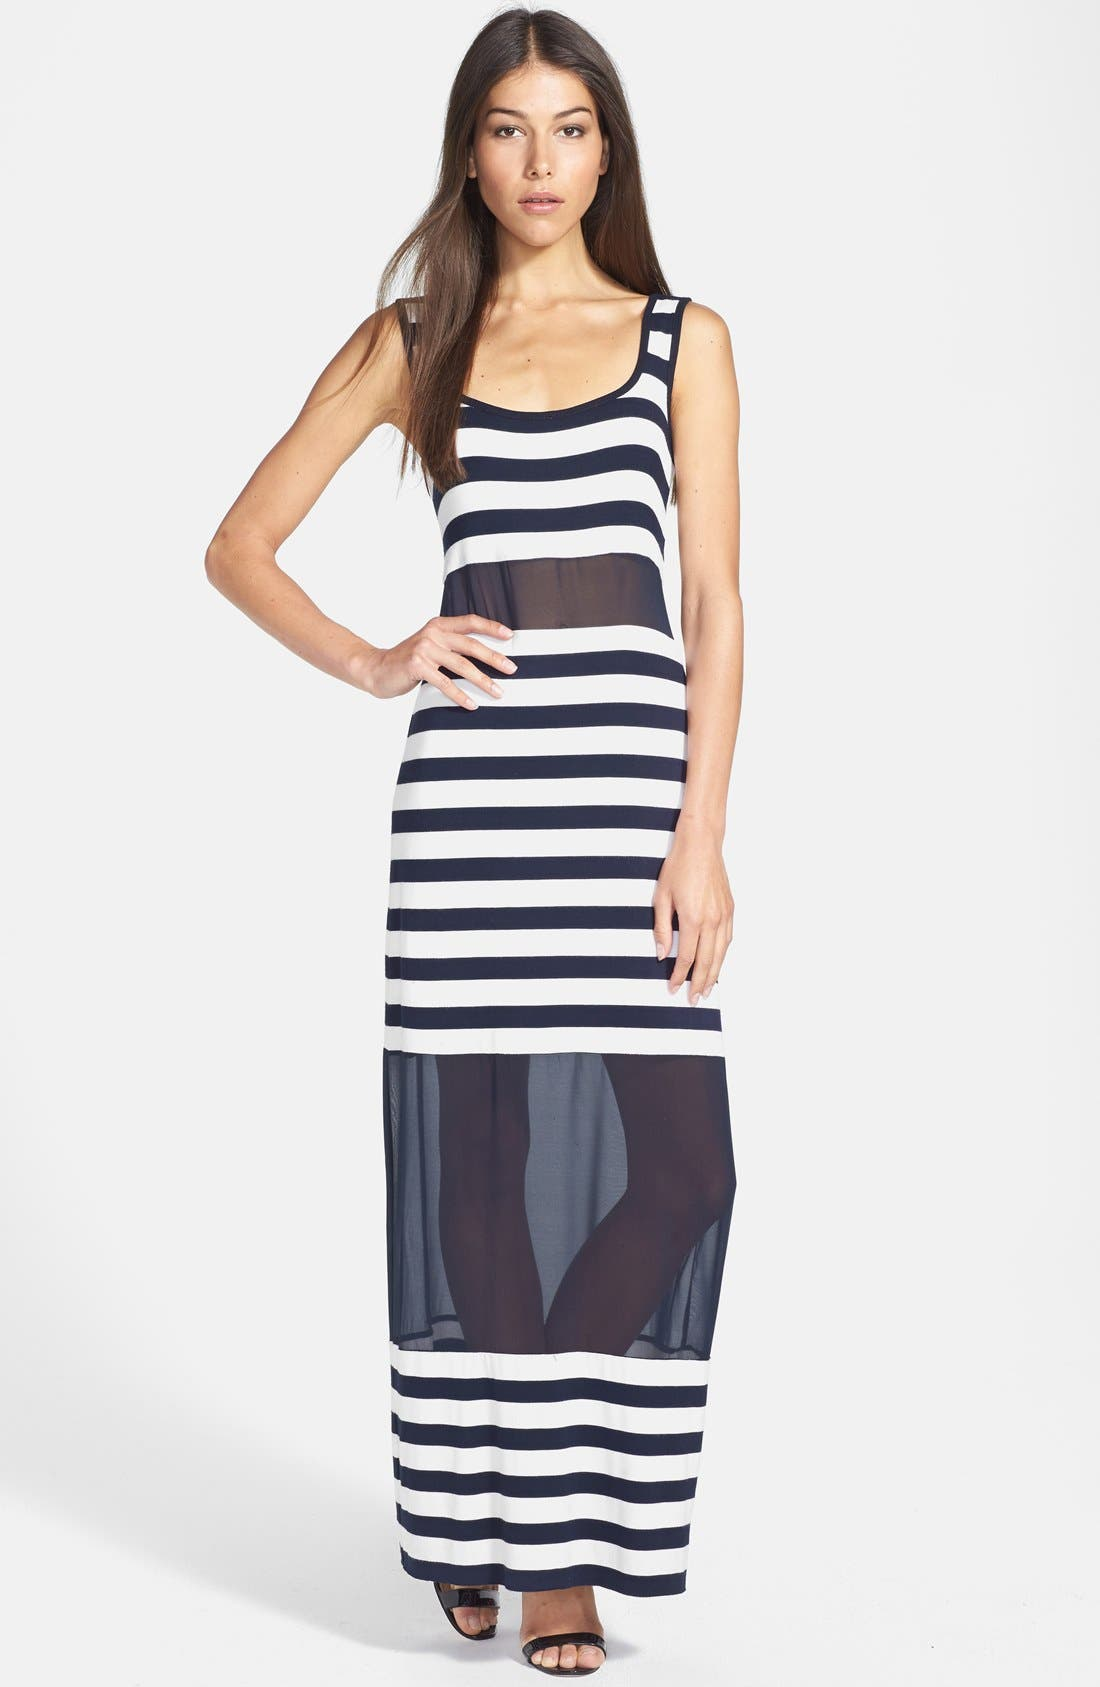 Alternate Image 1 Selected - Bailey 44 'Tattooed Love Goddess' Stripe Sheer Inset Maxi Dress